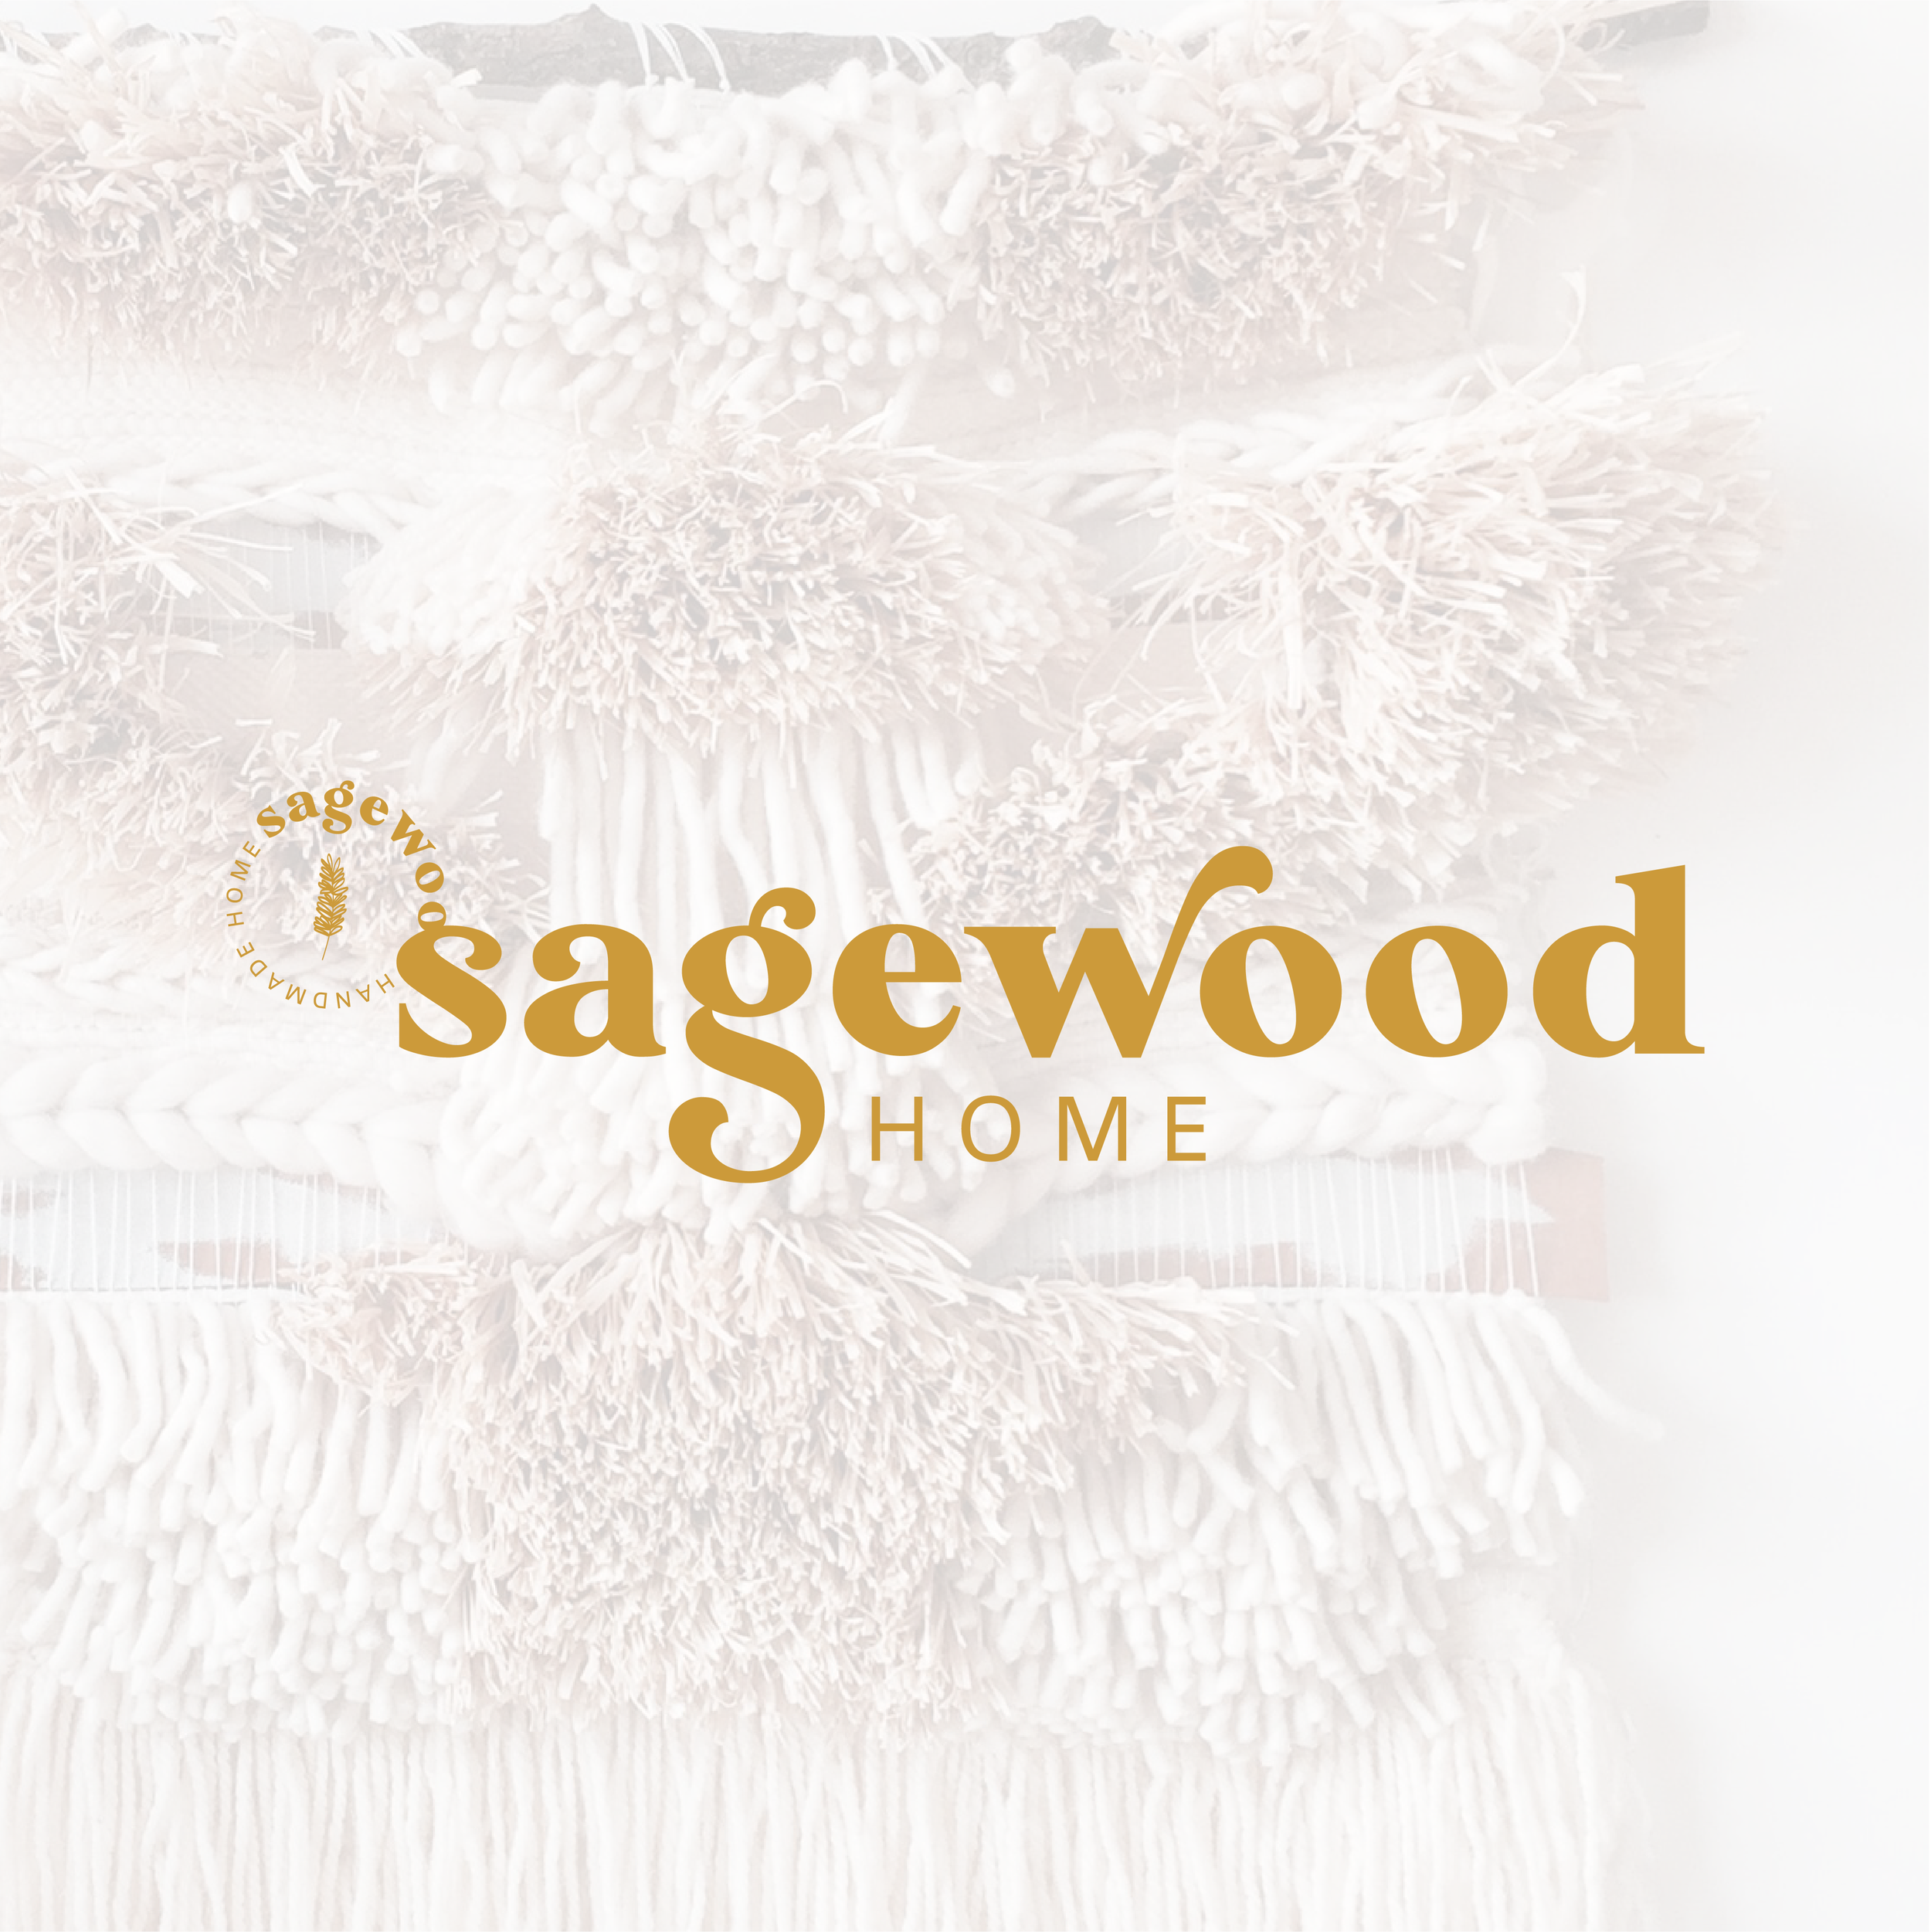 Sagewood Home | Brand Identity Design | Pre-made Brand Kit for sale in  The Foxtrot Shop